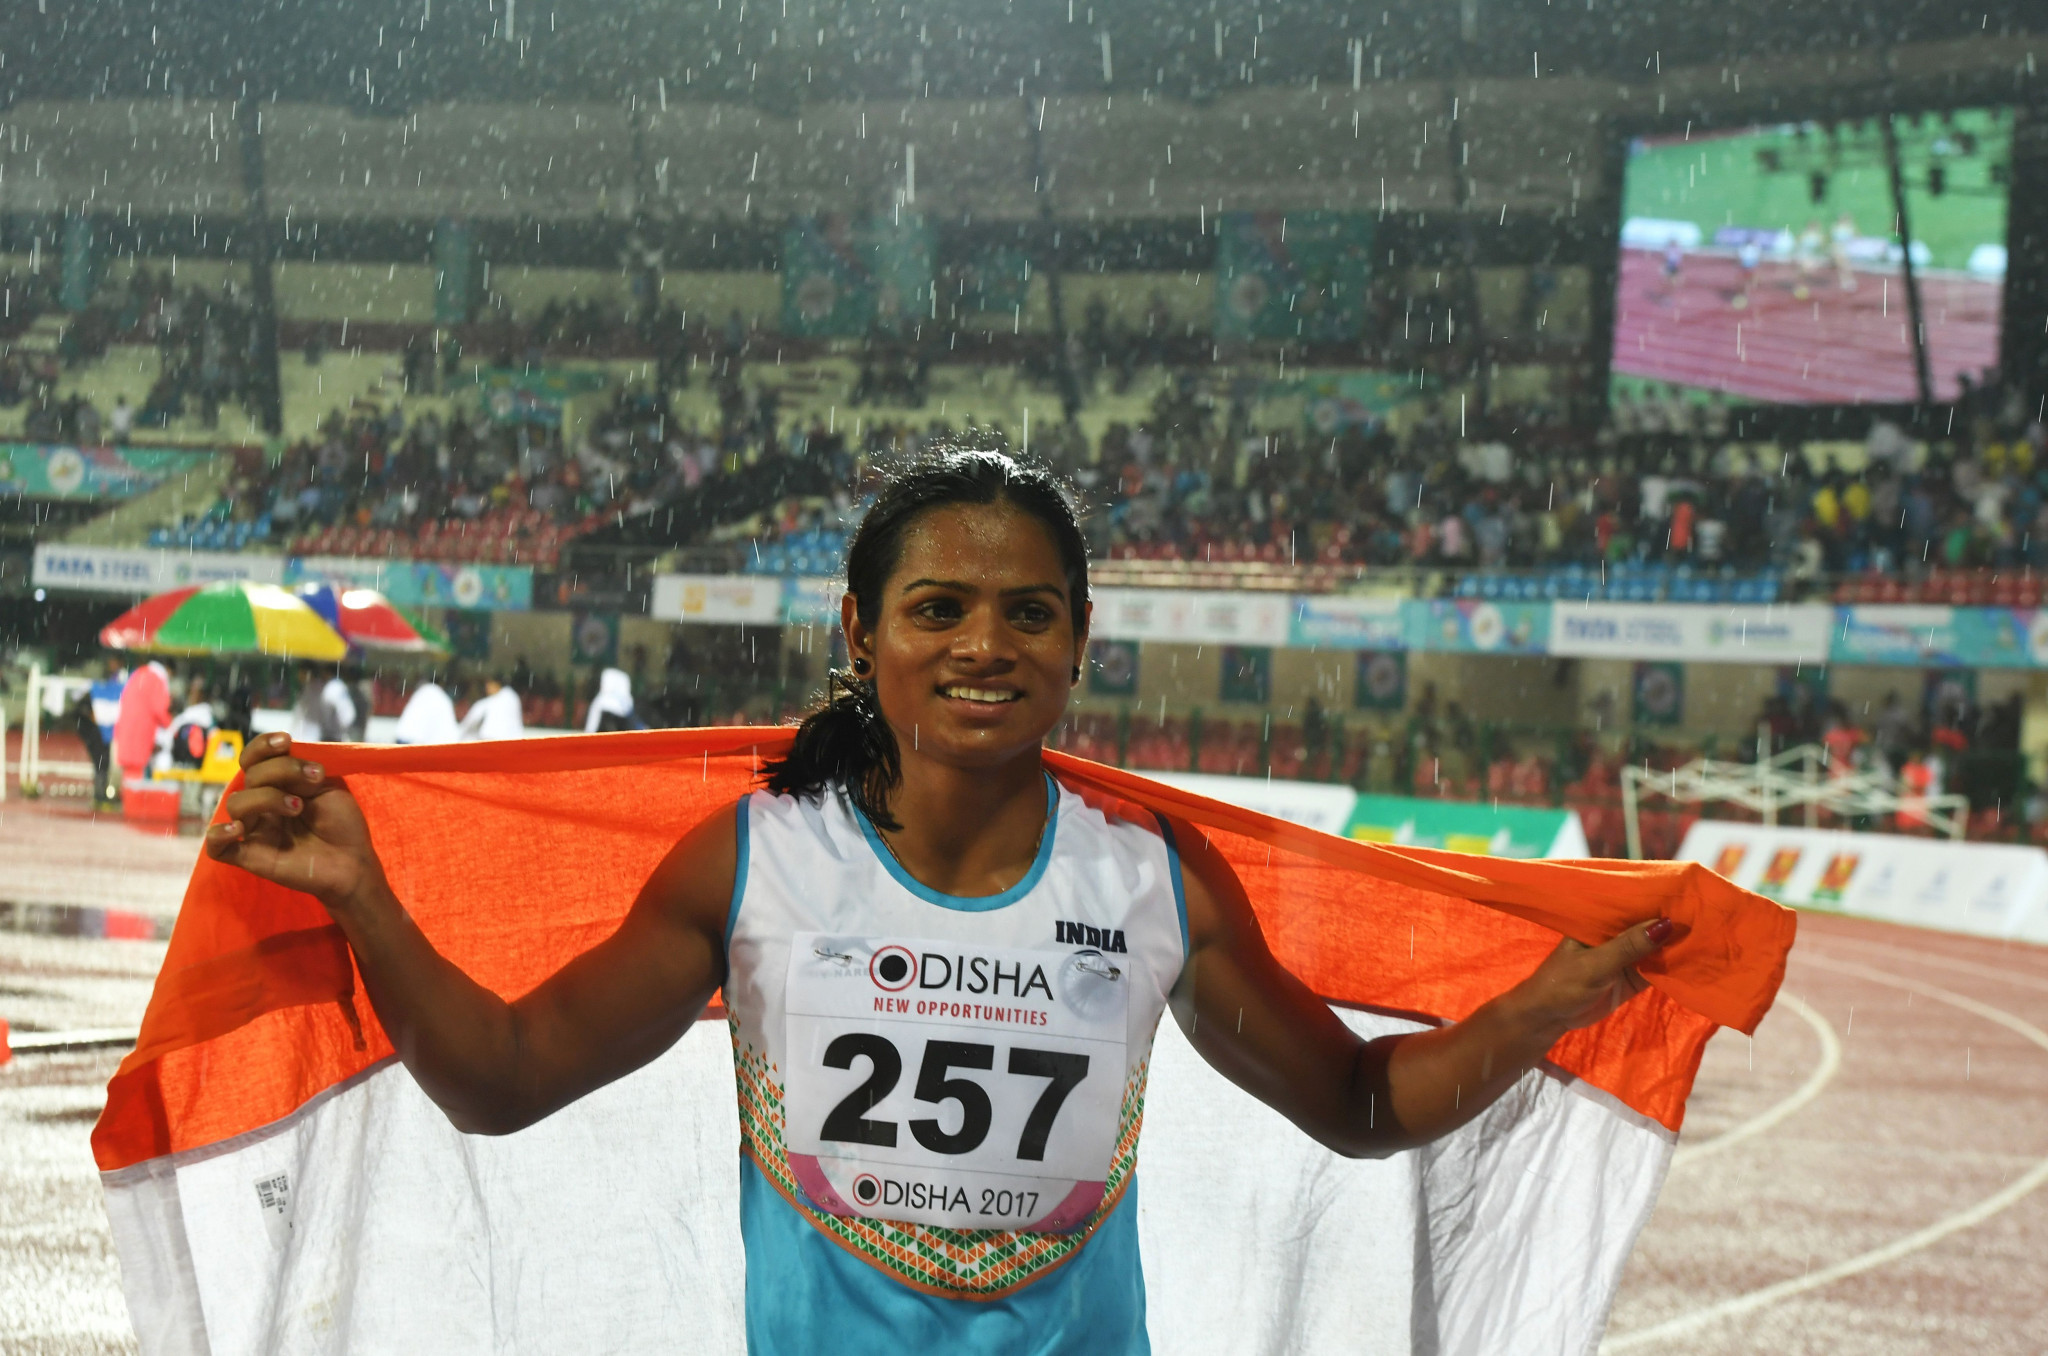 India's Dutee Chand, pictured, has offered her support to Caster Semenya ©Getty Images